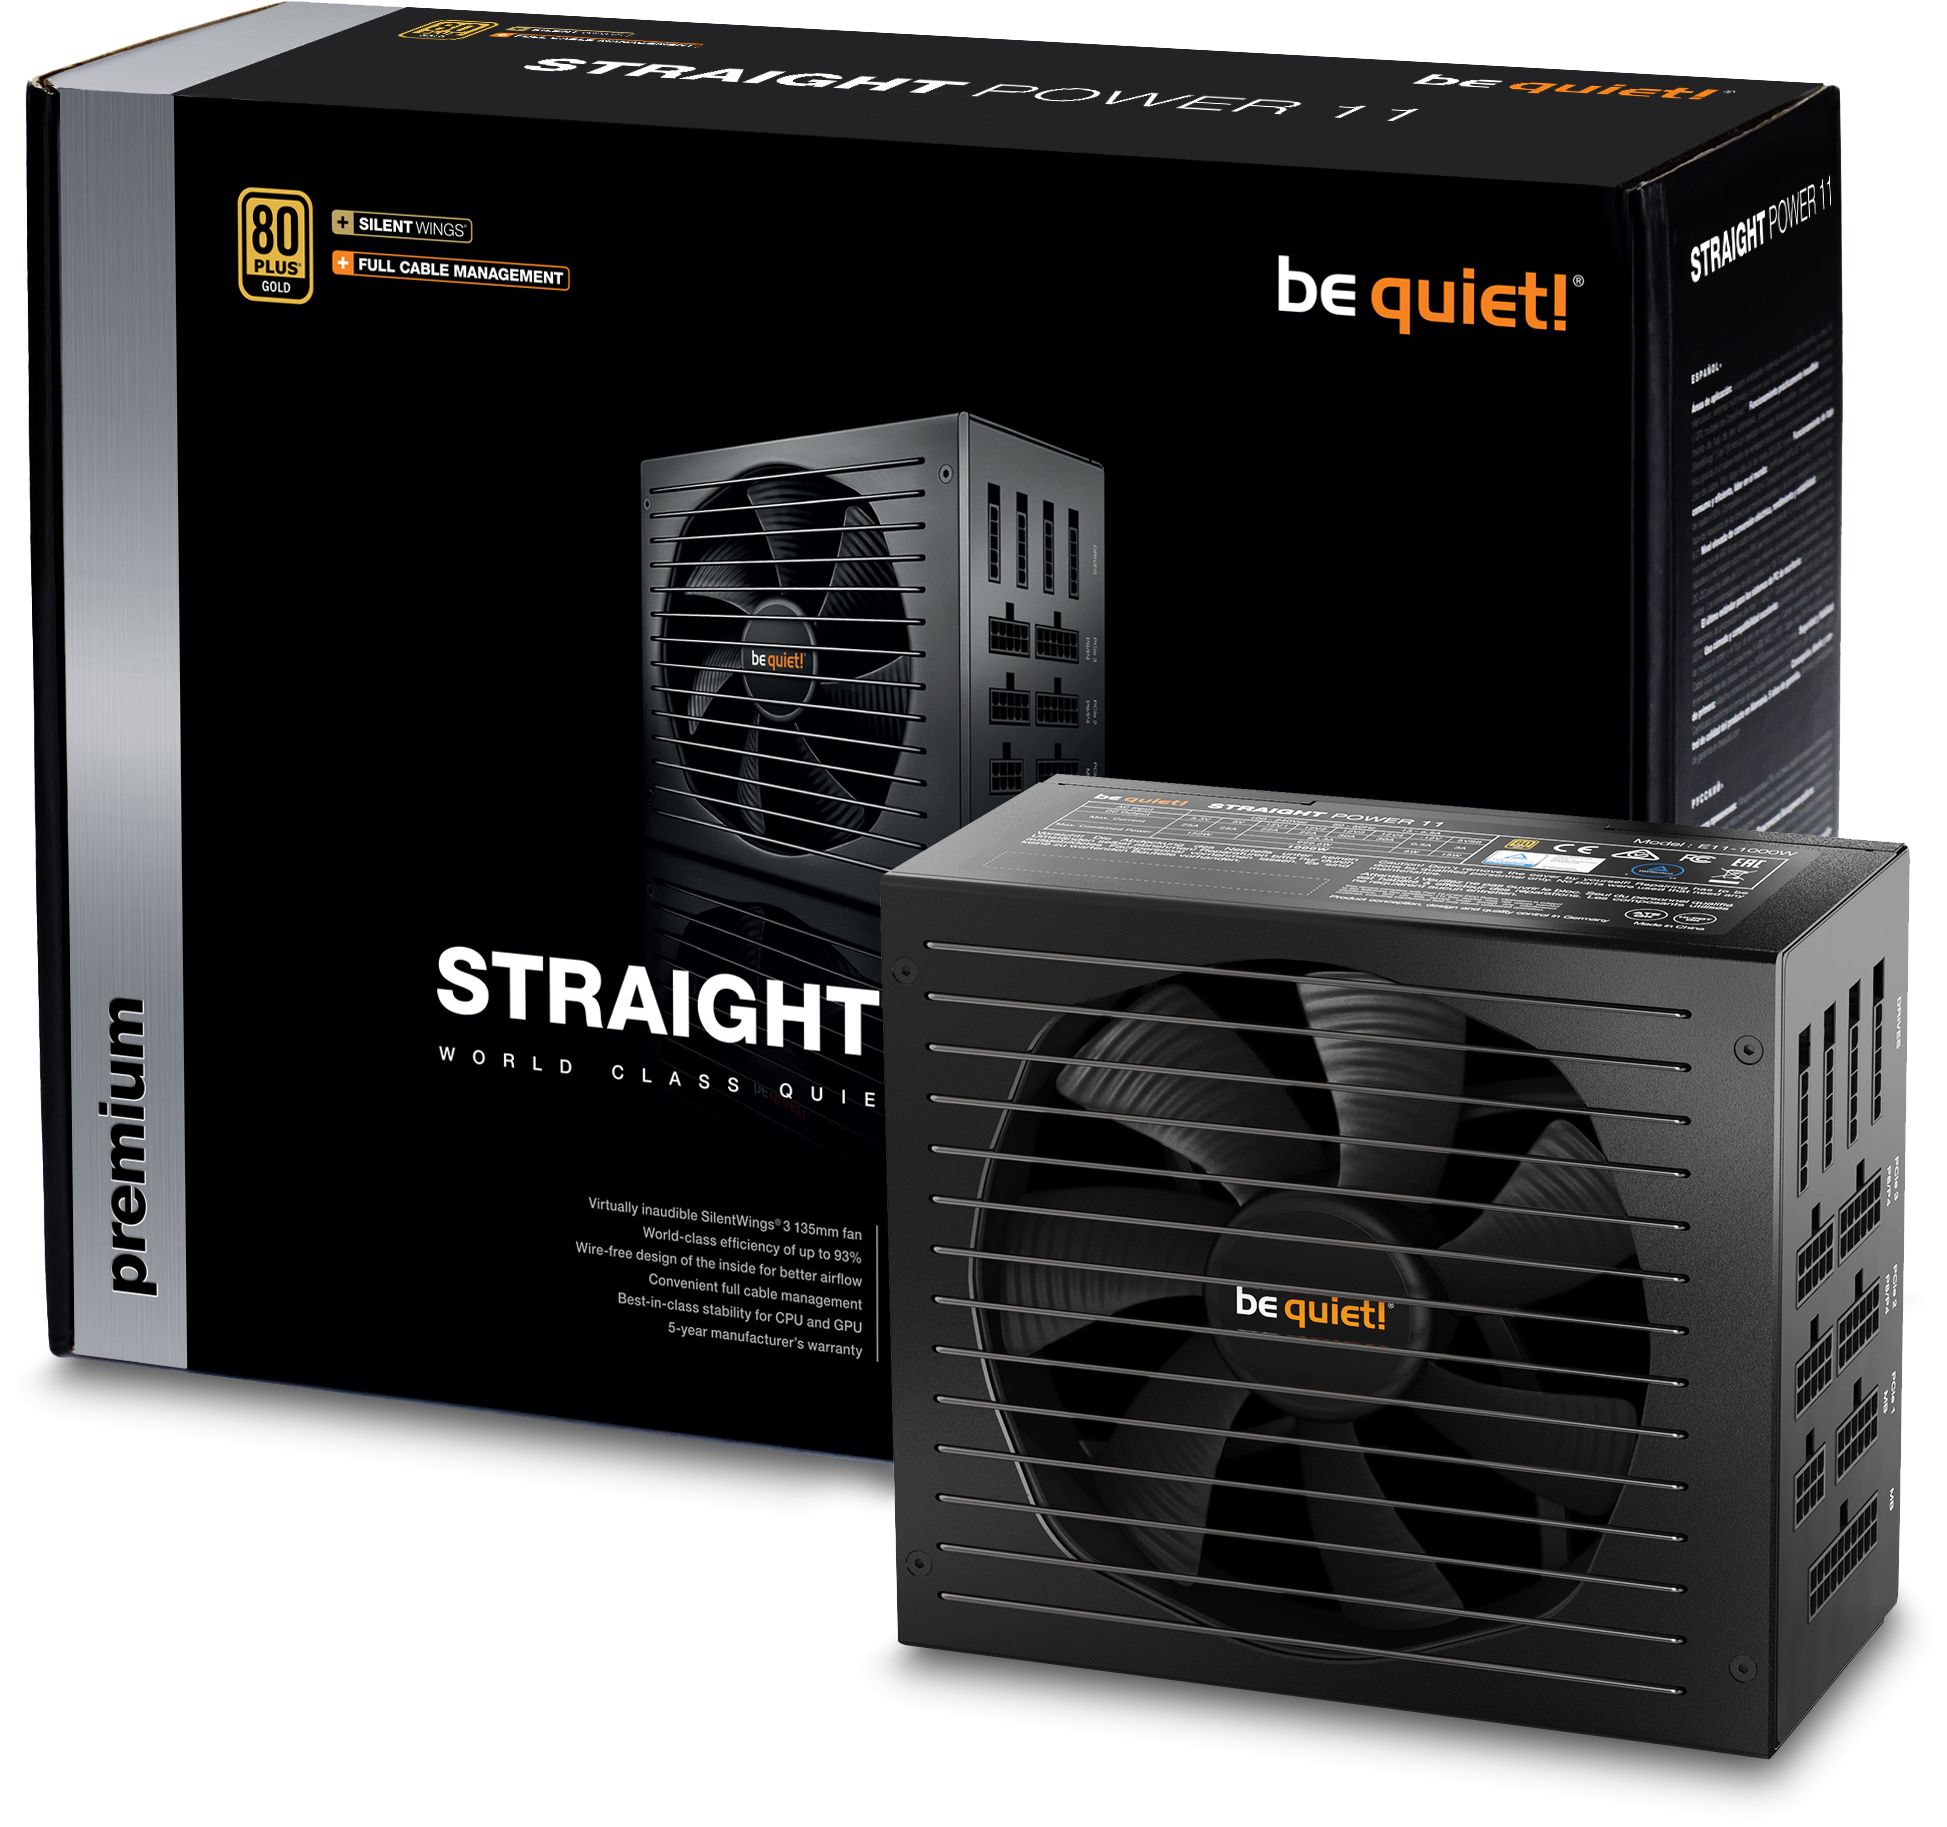 Sp Power Supply Advance 450 W Wat Cpu Pc 450w Daftar Harga Pro 470watt Psu 470w Komputer Watt Source The Be Quiet Straight 11 Series Raises Bar For Systems That Demand Virtually Inaudible